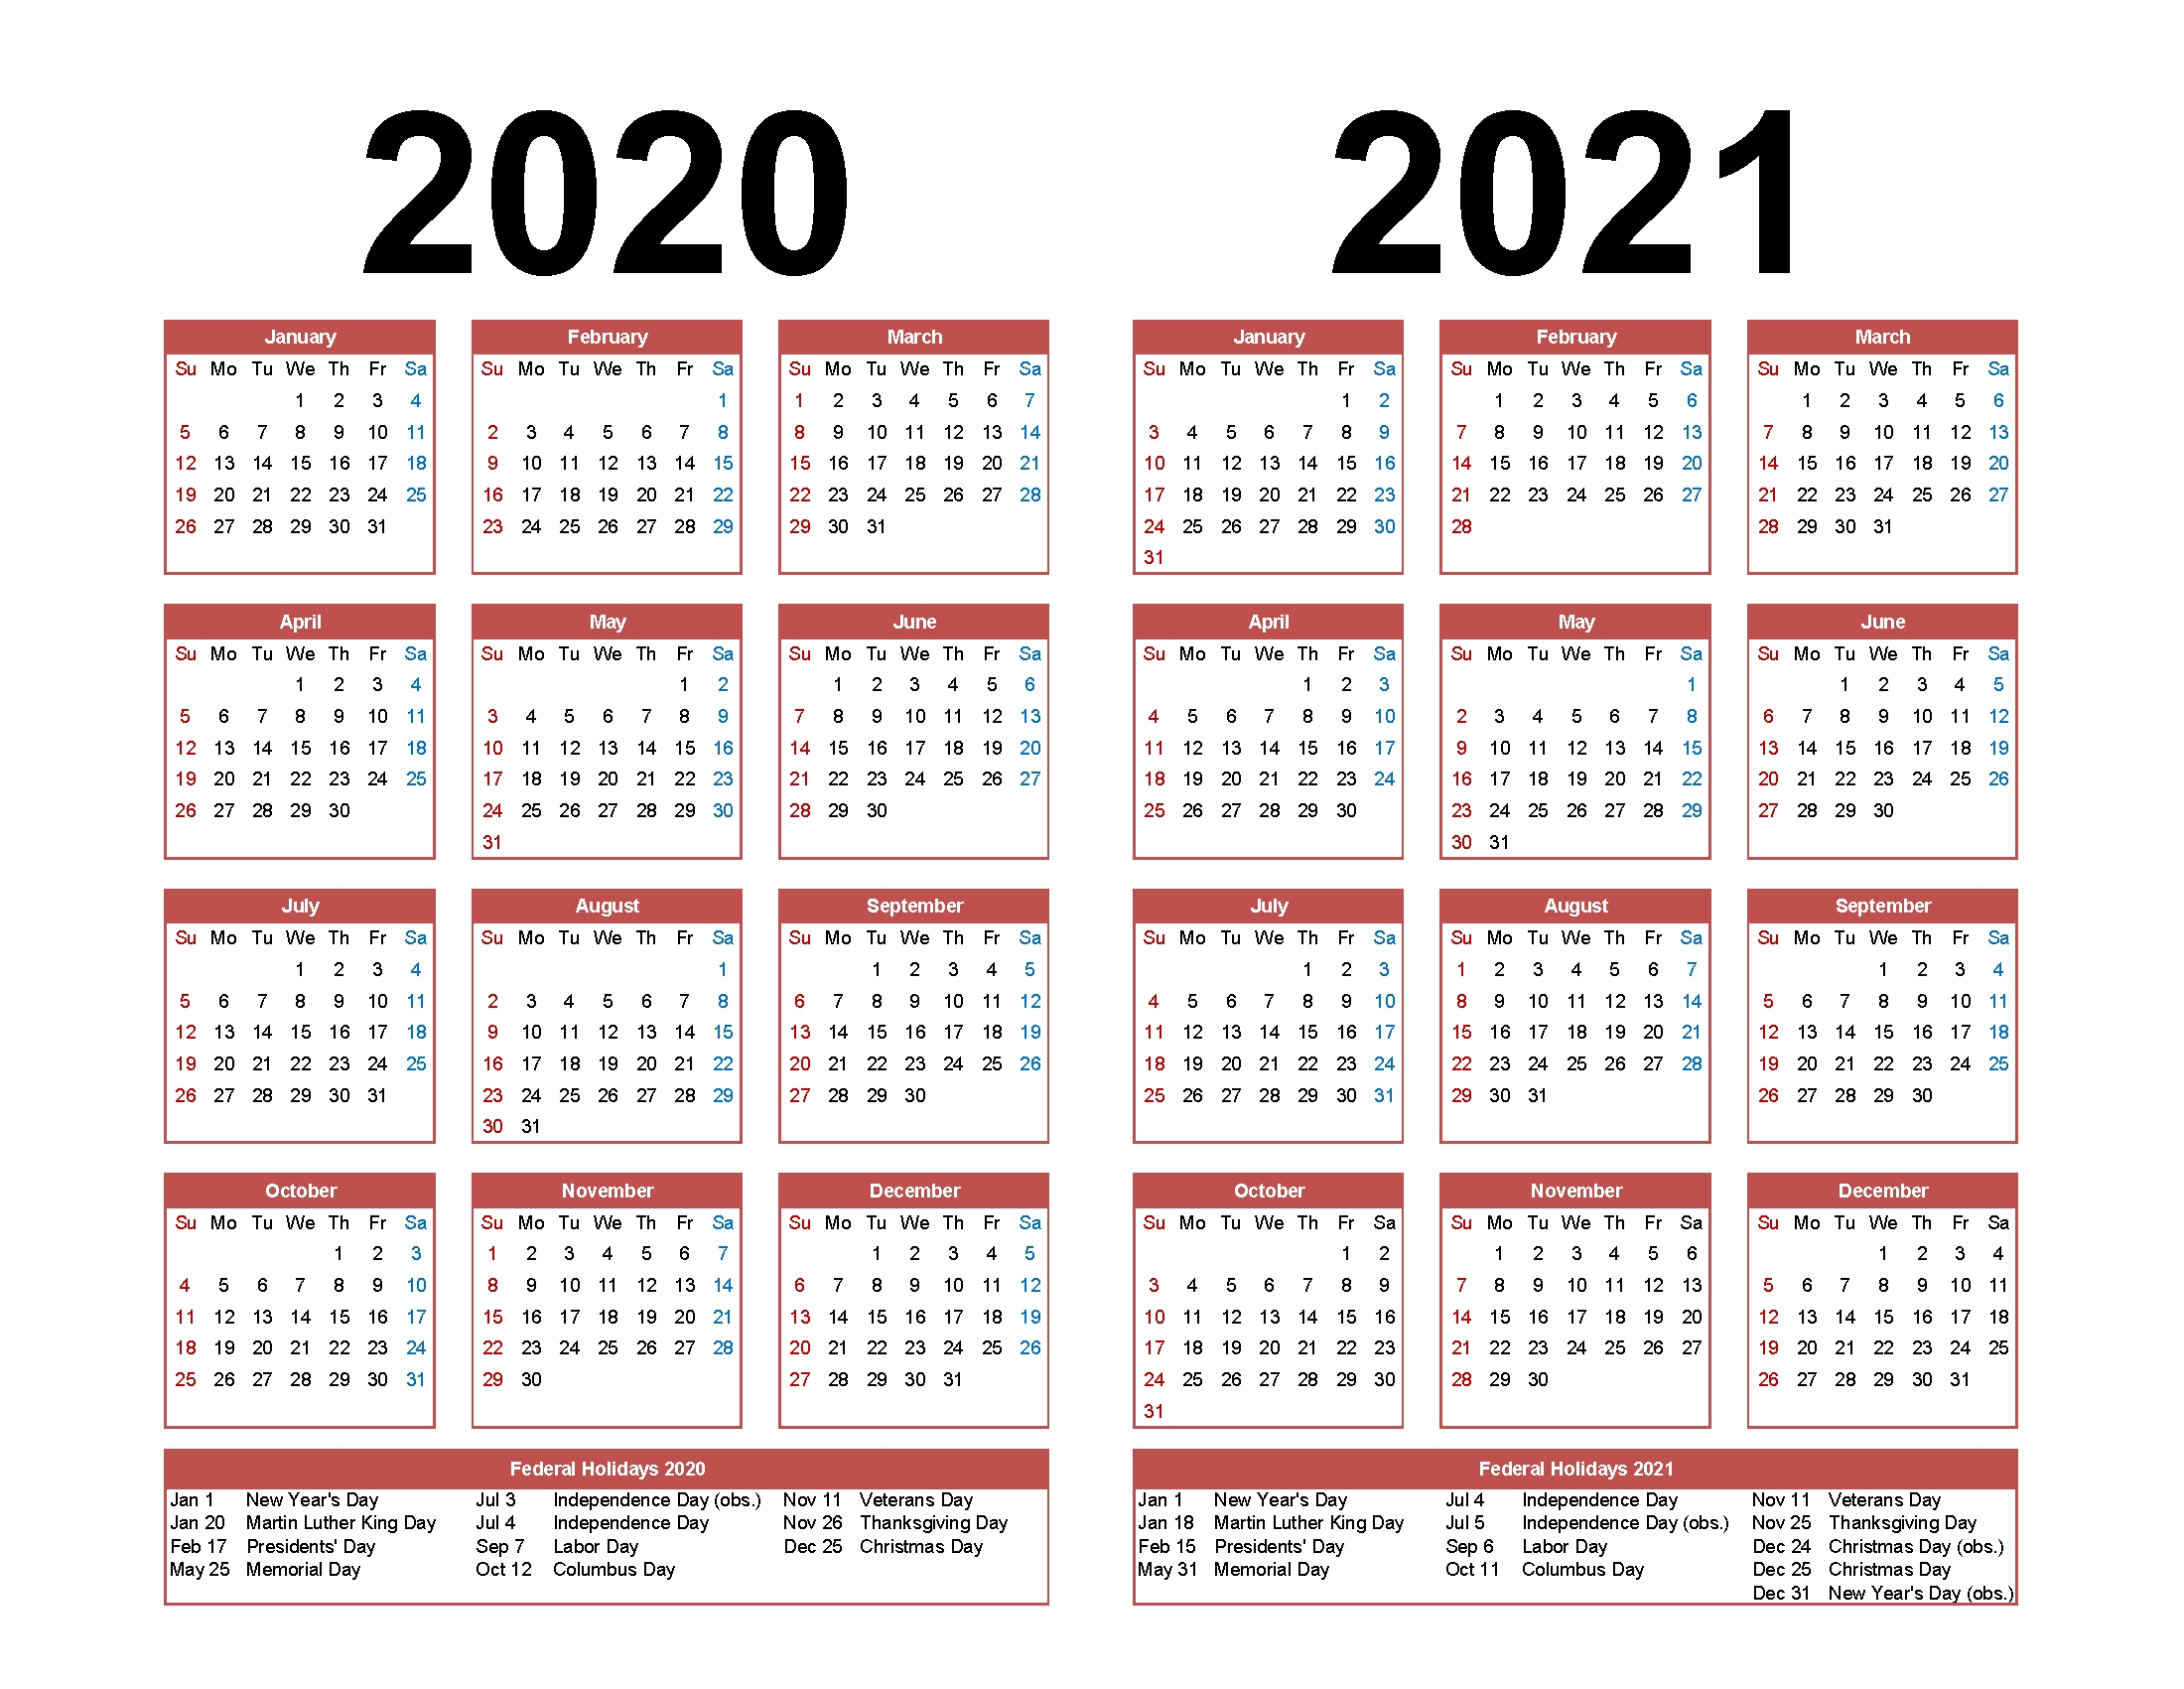 Printable Calendar 2020 2021 Two Year Per Page Free Pdf intended for Printable Calendar Or 2020 And 2021 Monday To Sunday